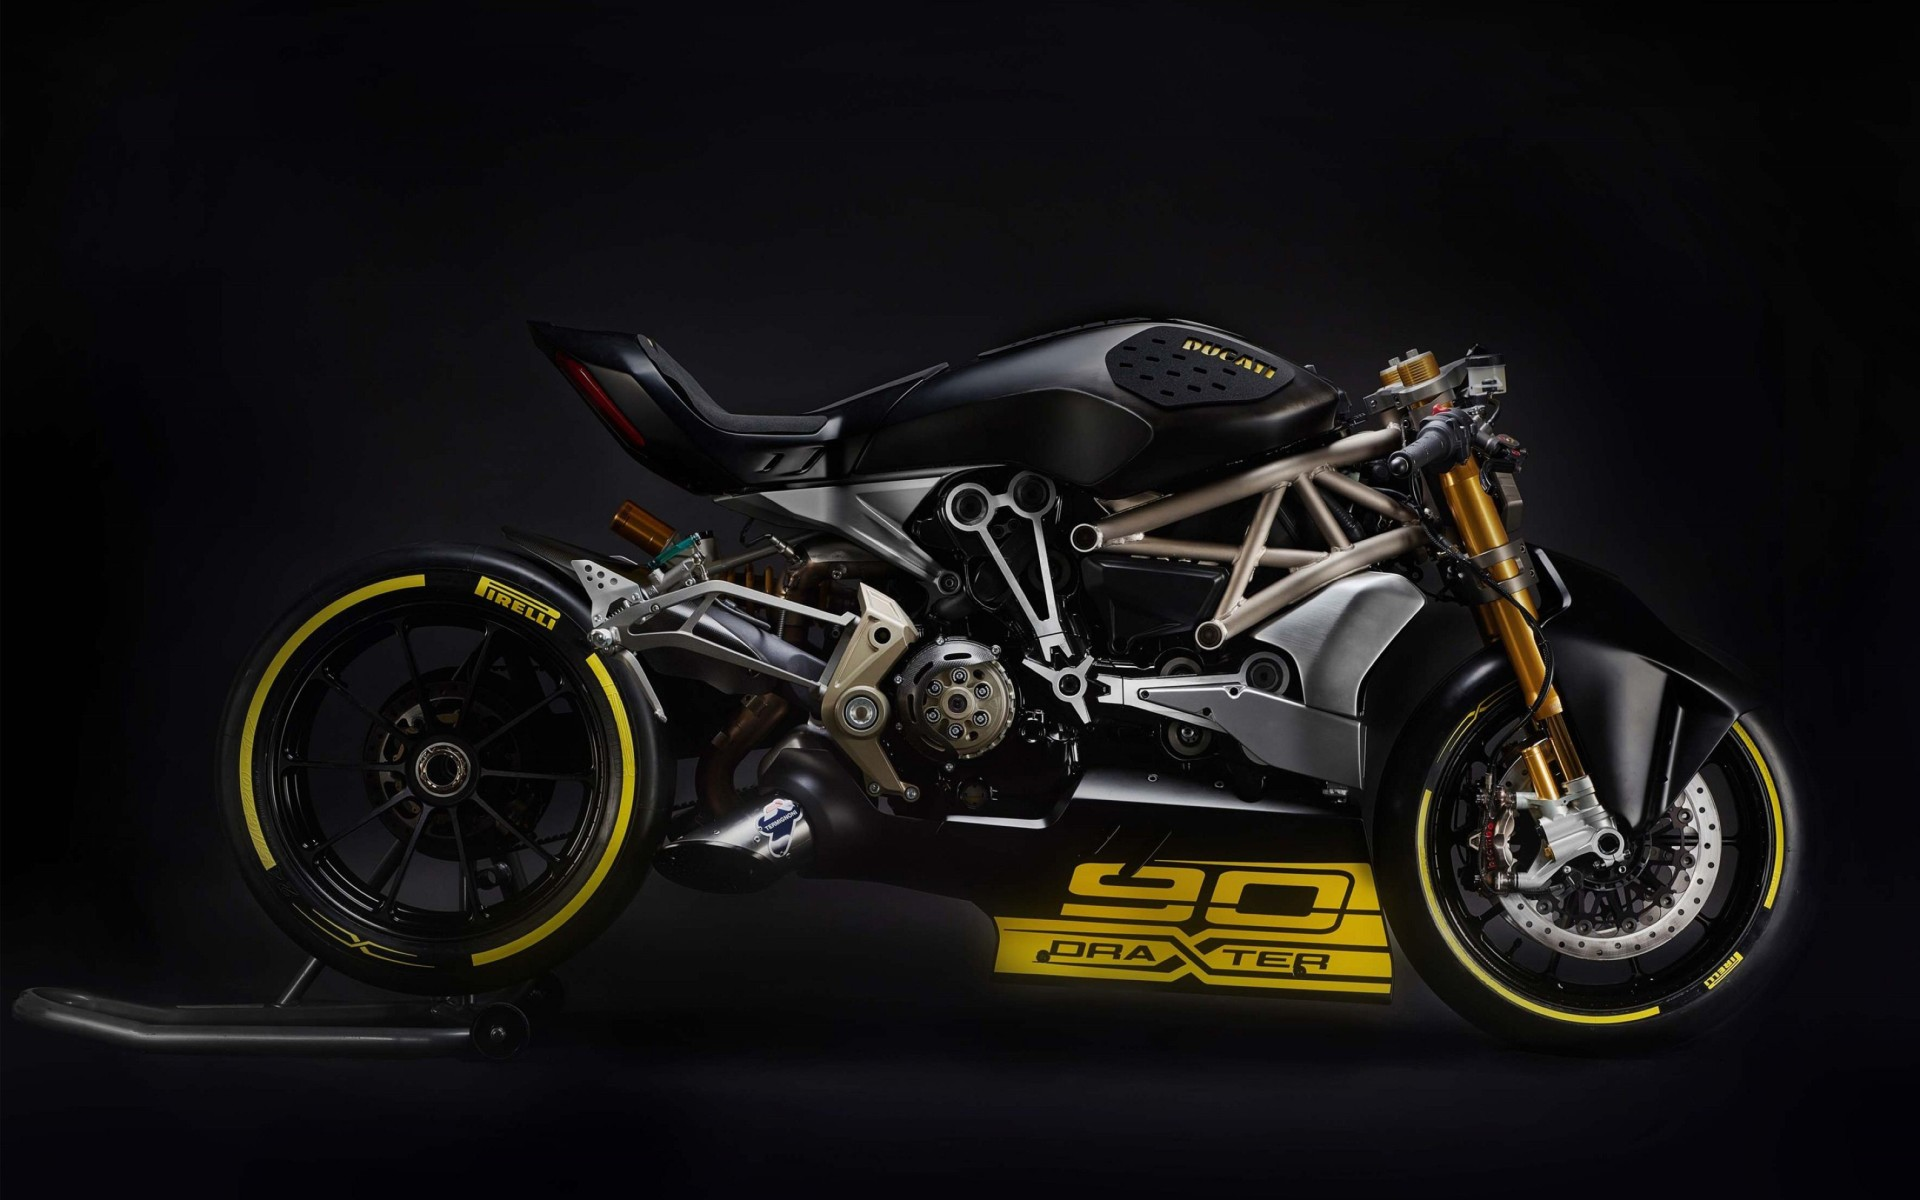 2016 Ducati Draxter Wide Wallpaper